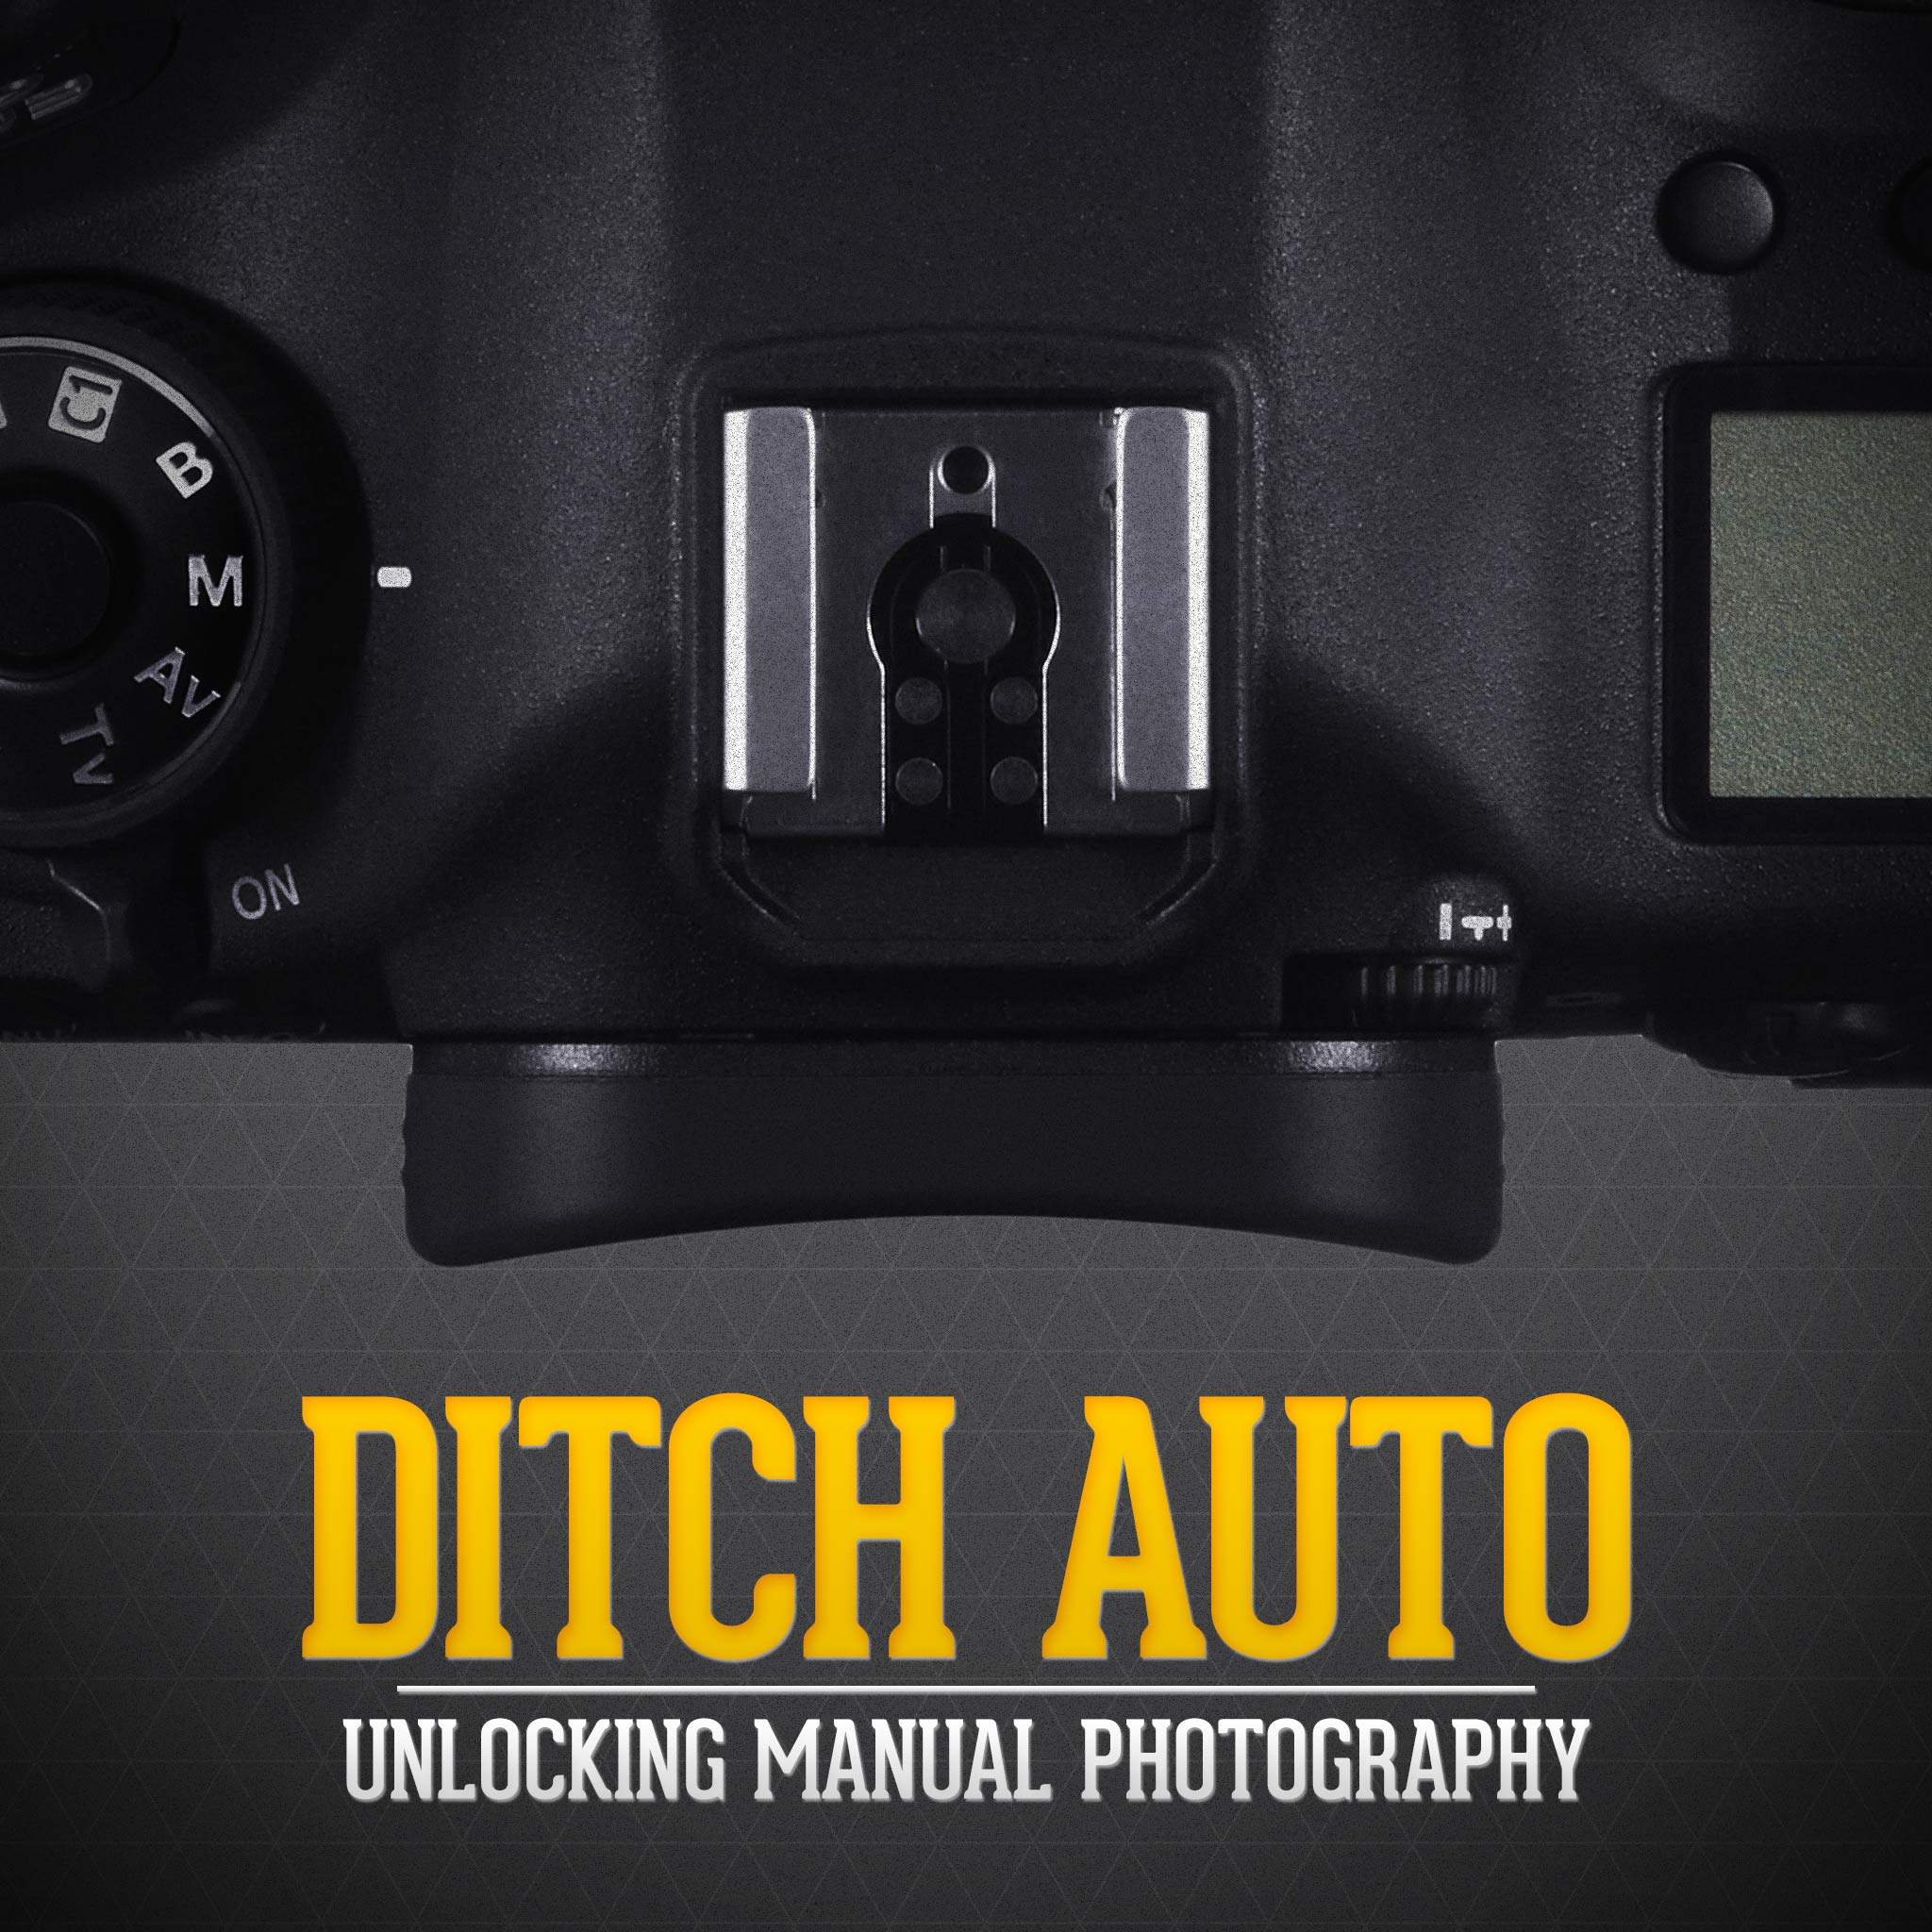 Ditch Auto: Unlocking Manual Photography